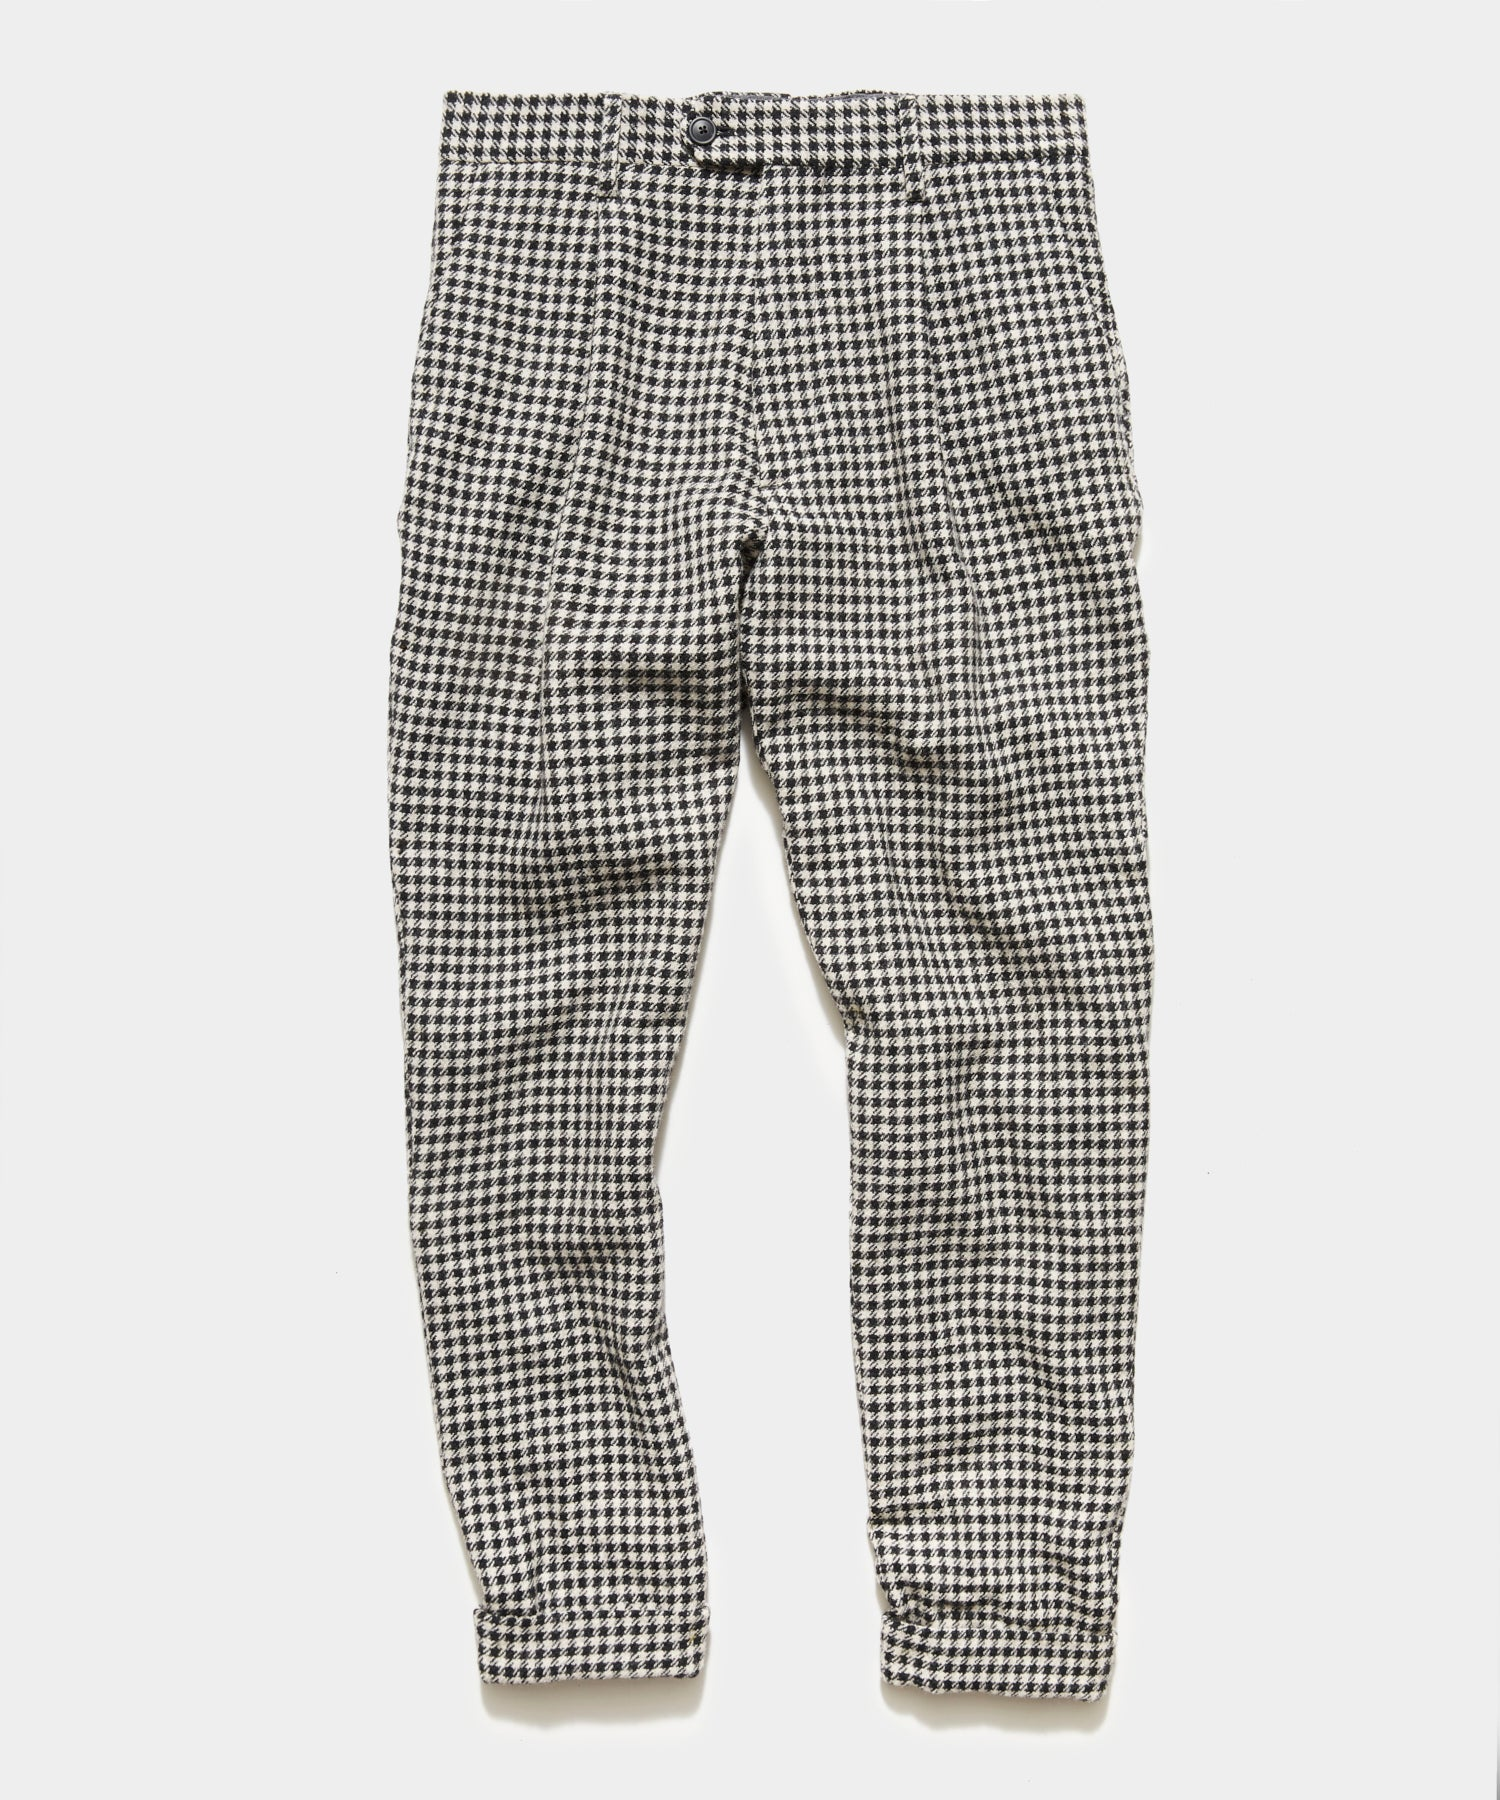 Cream and Black Houndstooth Wool Pleated Pant